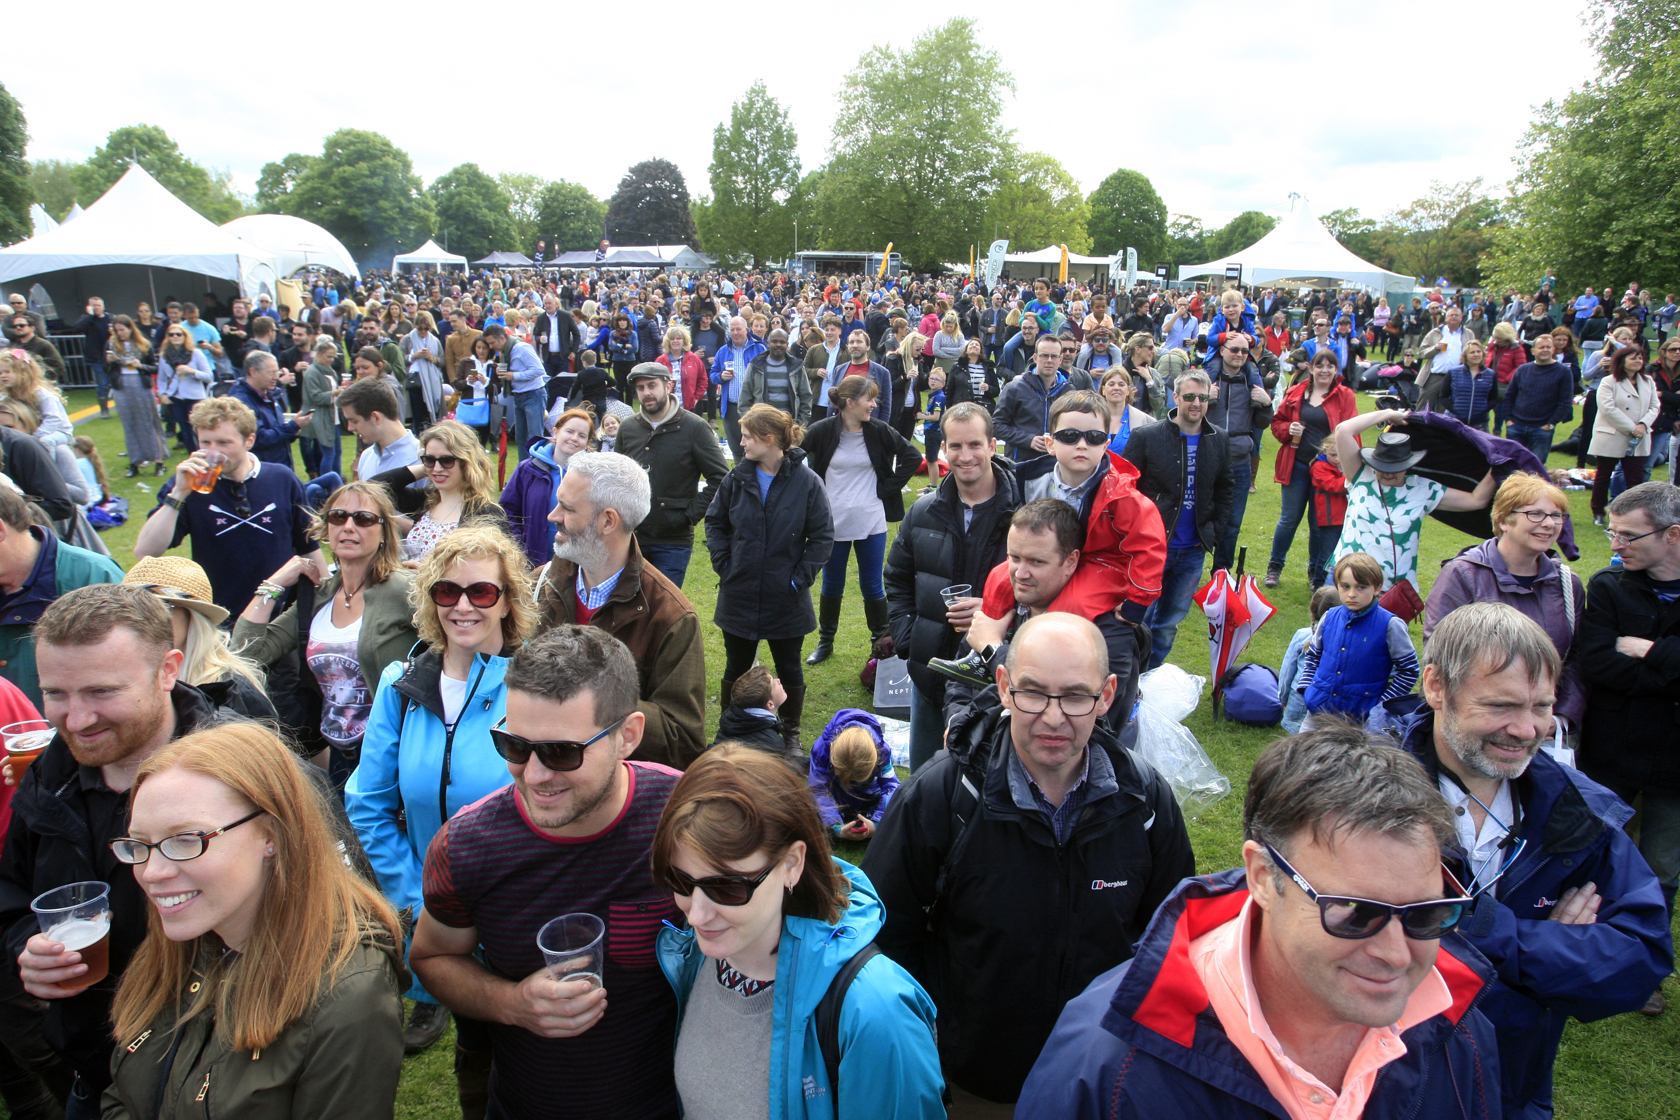 Thousands of people packed out Higginson Park at the festival's debut last year